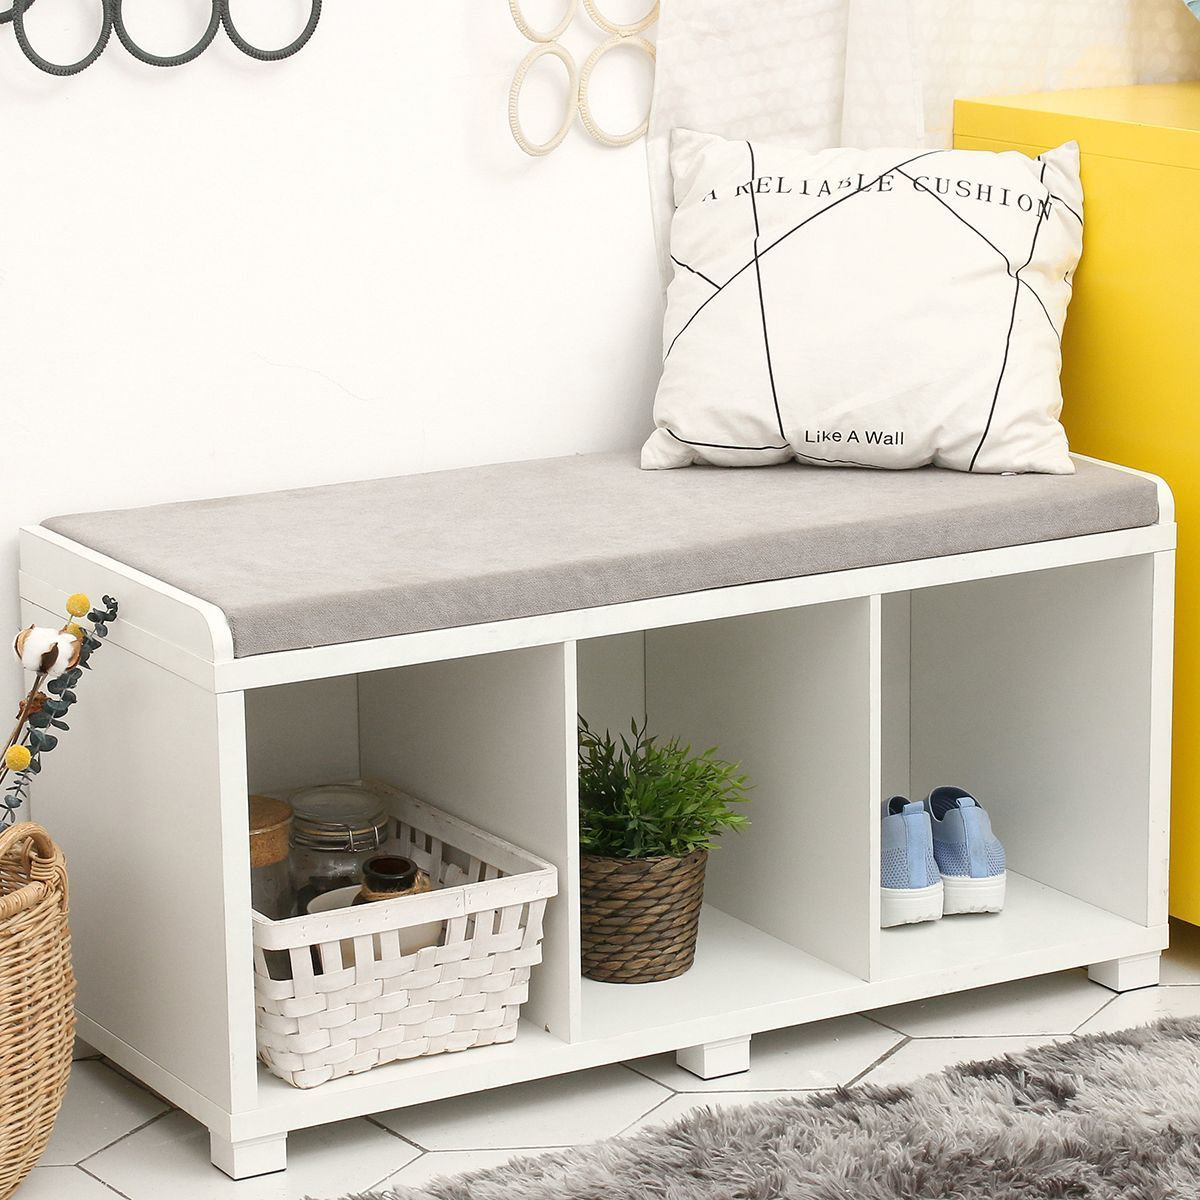 3 Cubby Cushion Storage Bench Shoes Cabinet Organizer Storage For Entryways Living Room Dorm Home Walmart Com In 2020 Storage Bench Cubby Storage Bench Bench With Storage